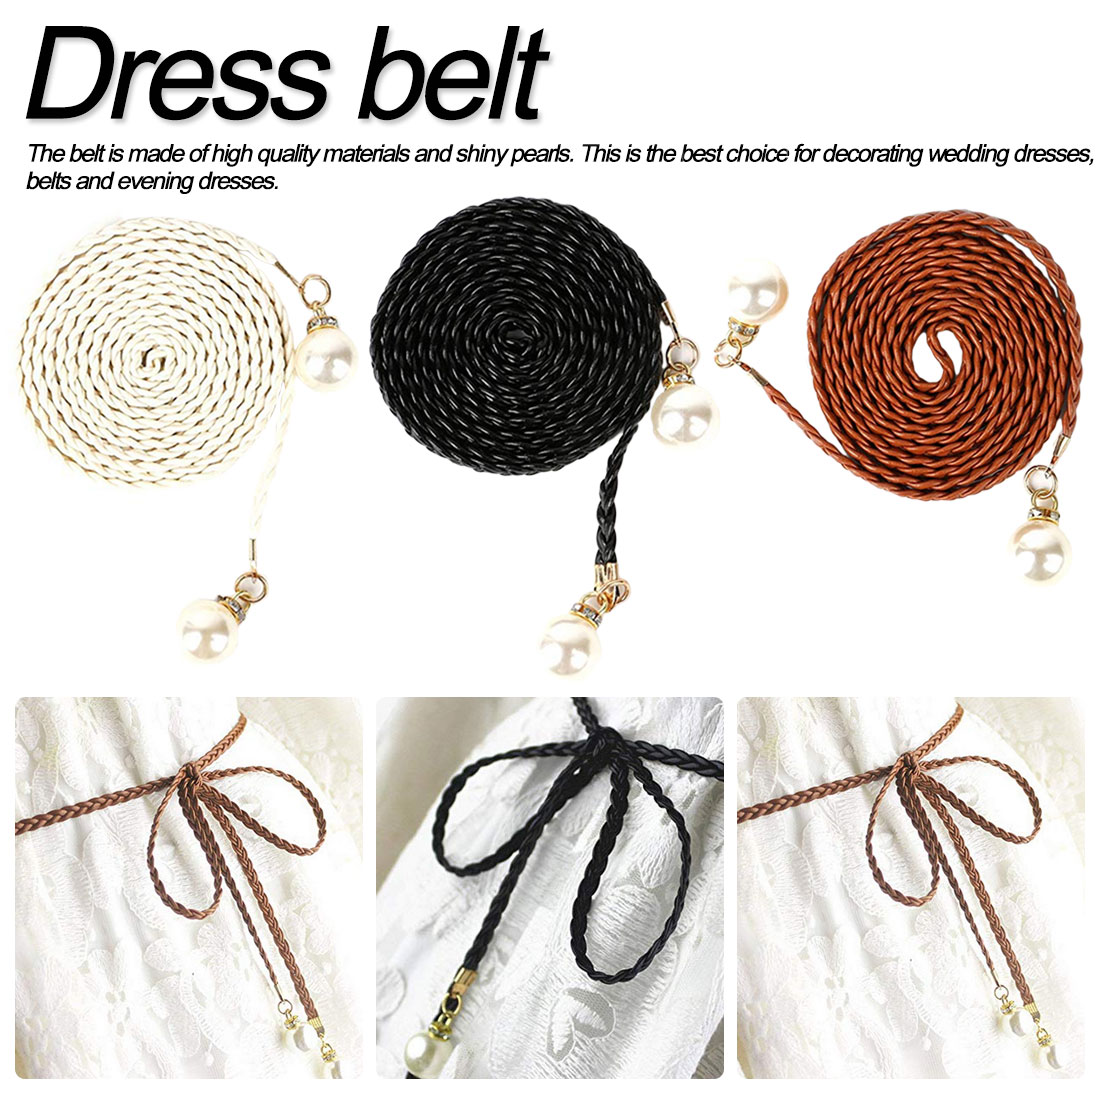 National Style New fashion decorative beaded belt knit pearl womens stretch simple ladies dress